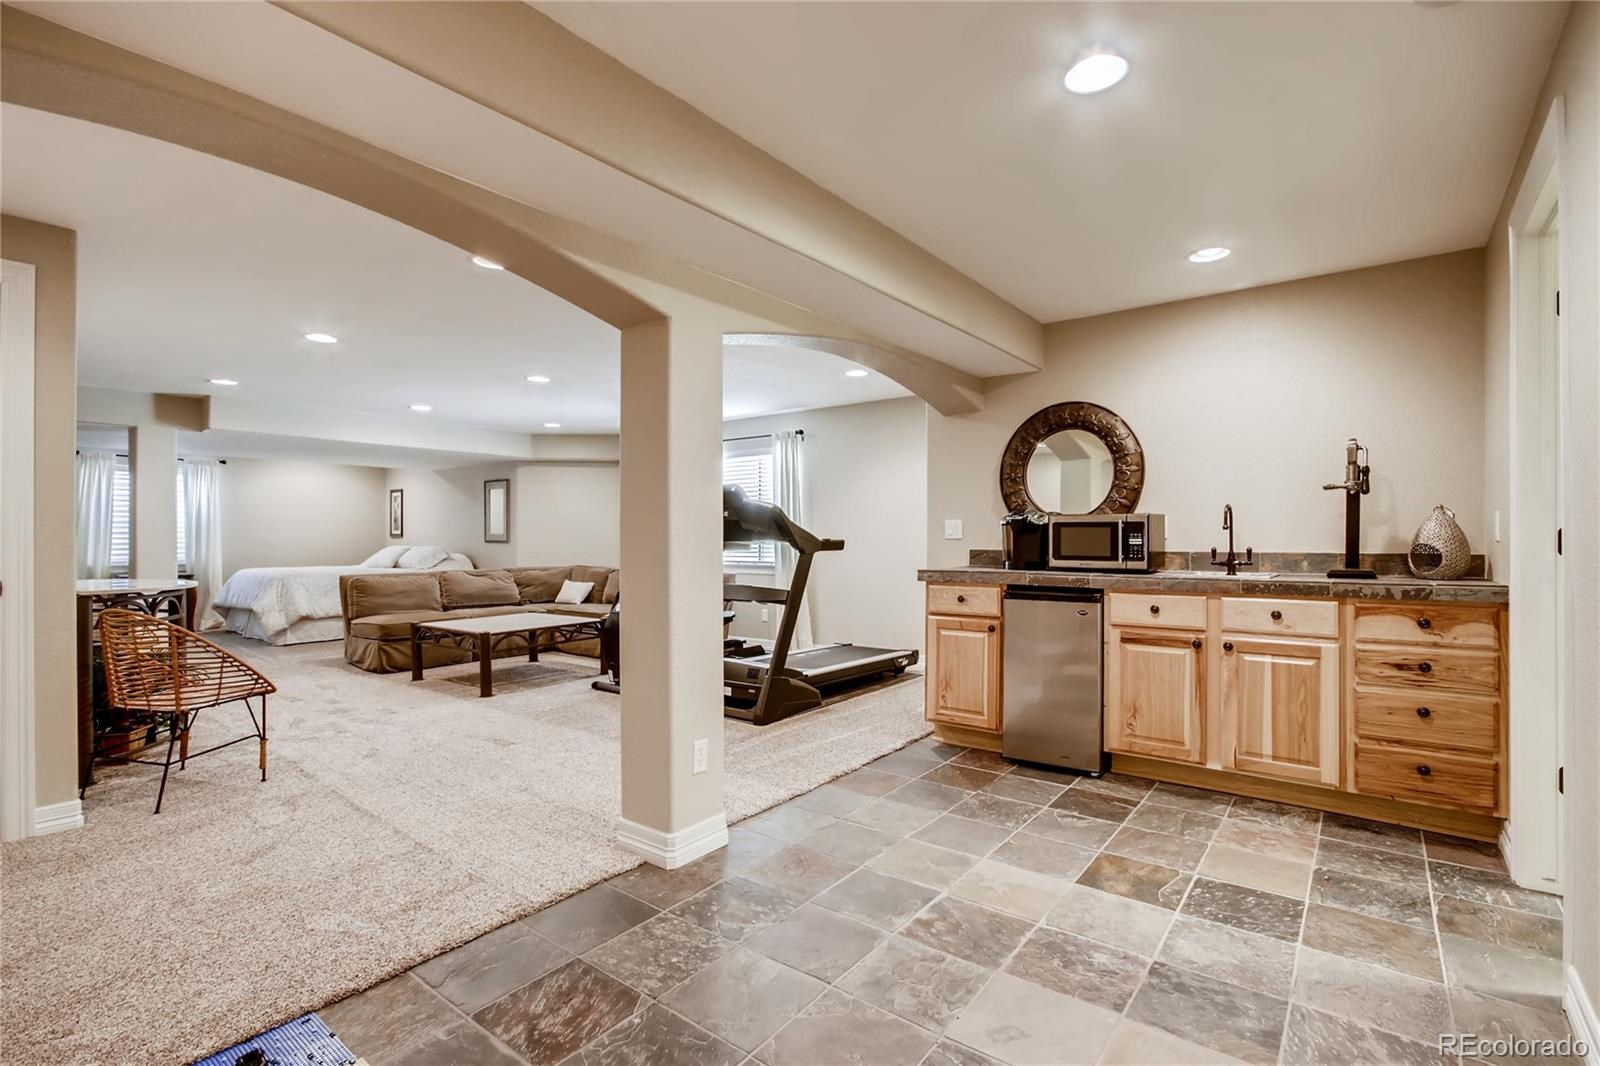 MLS# 7850062 - 23 - 624 Horan Court, Castle Pines, CO 80108